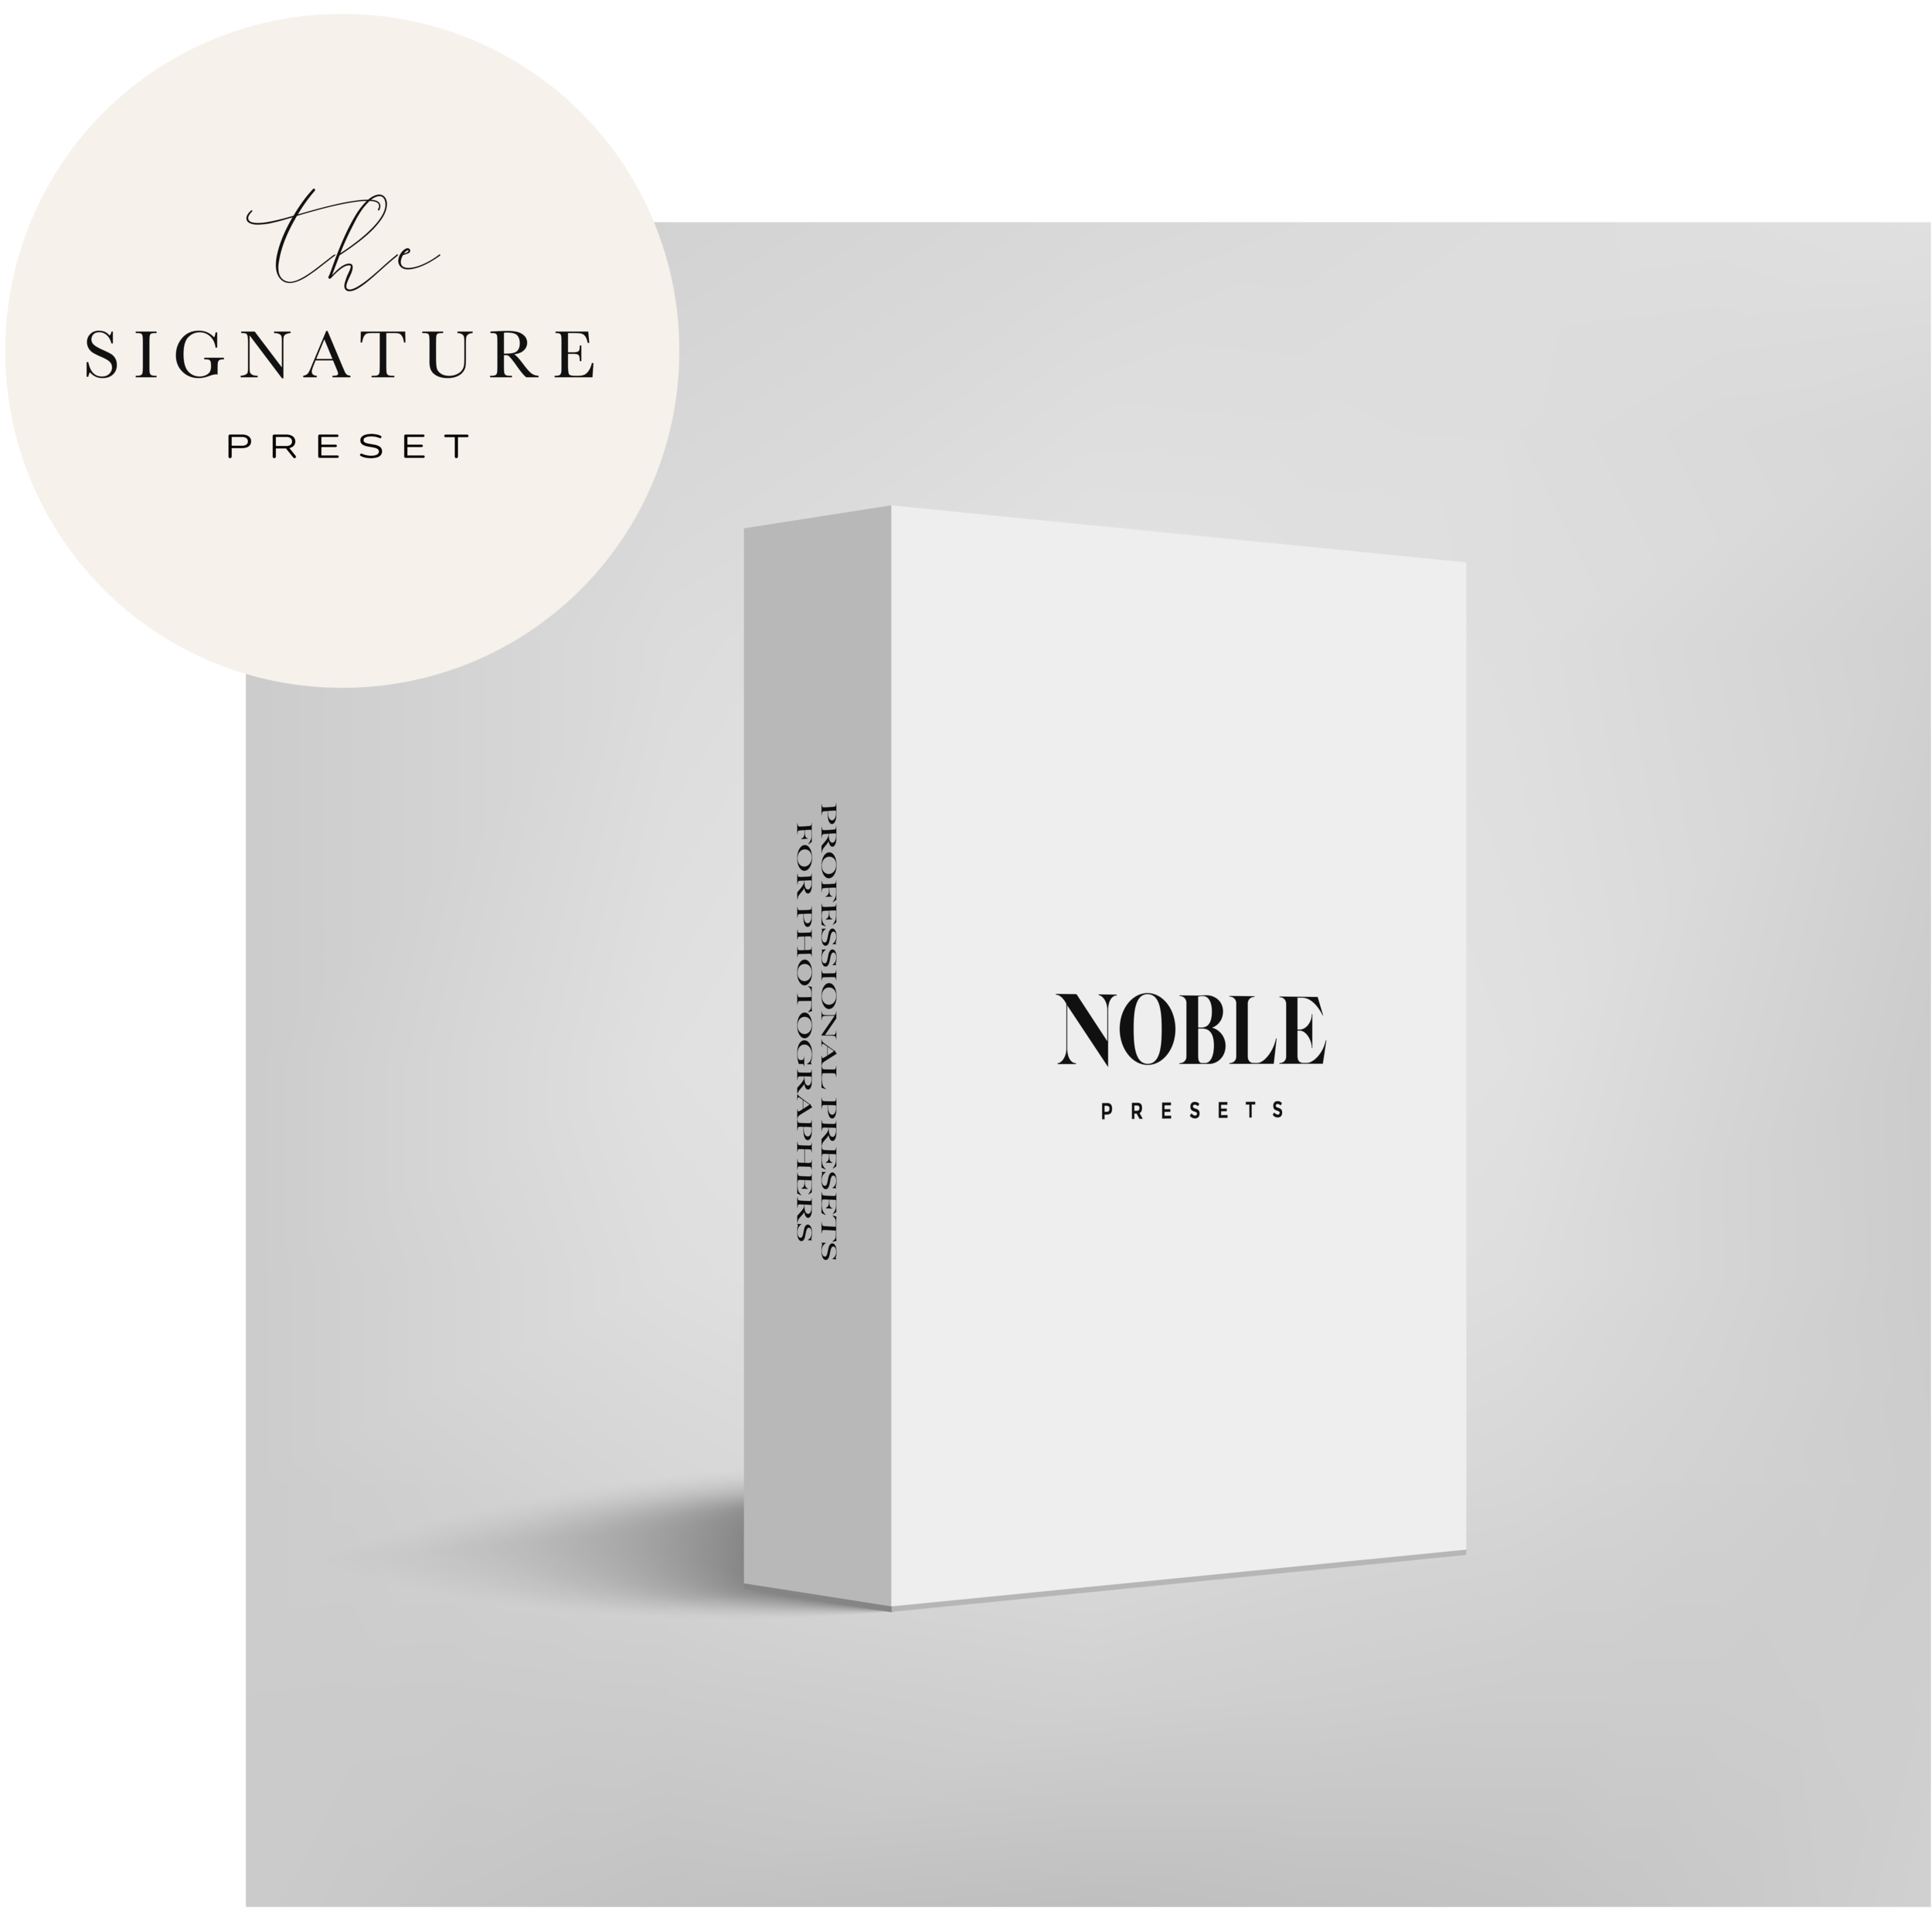 Noble Presets: Cleanest film inspired presets for photographers